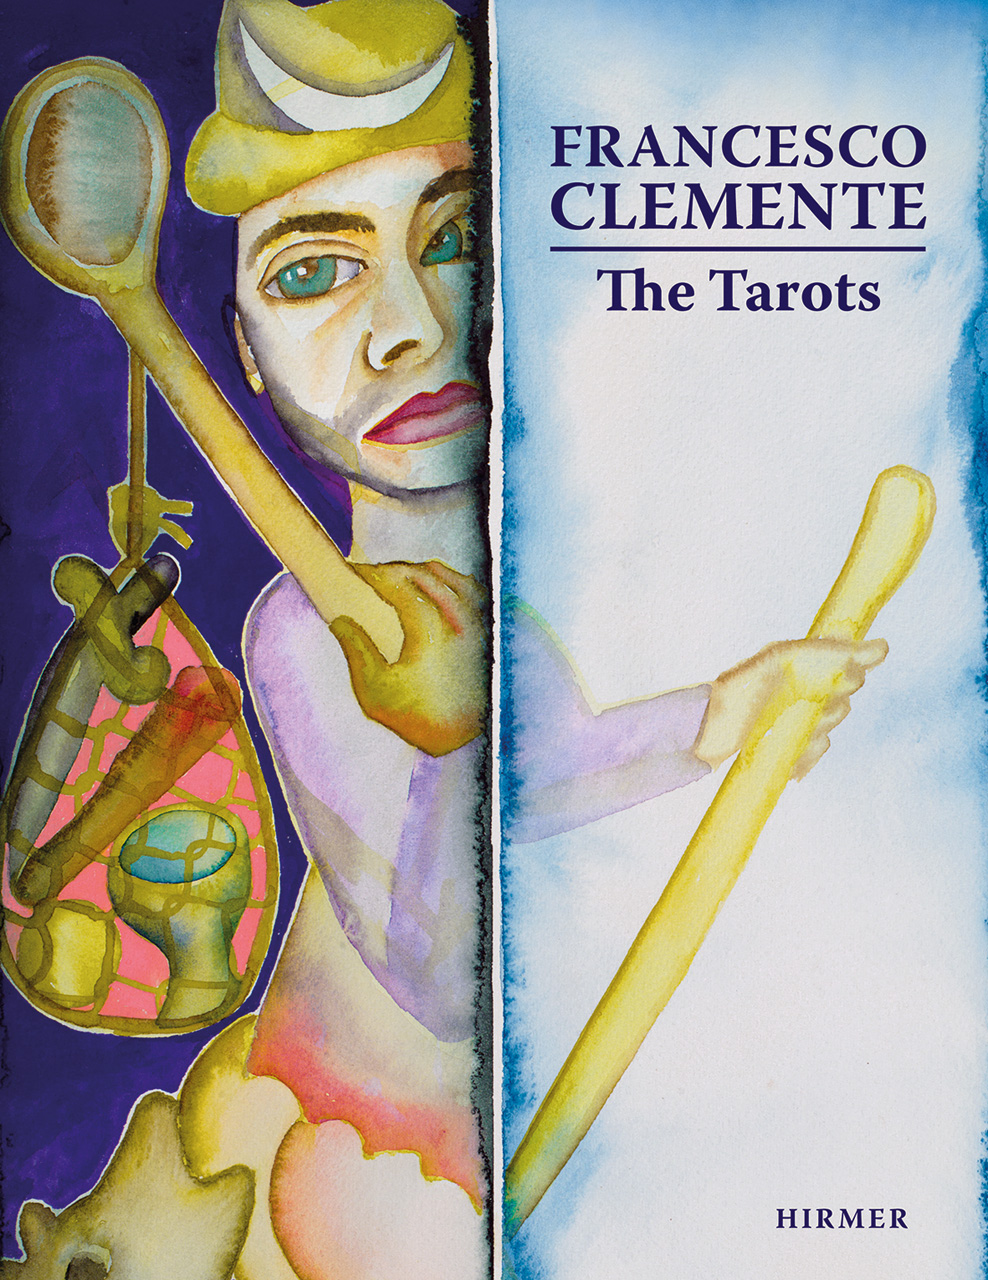 Francesco Clemente: The Tarots